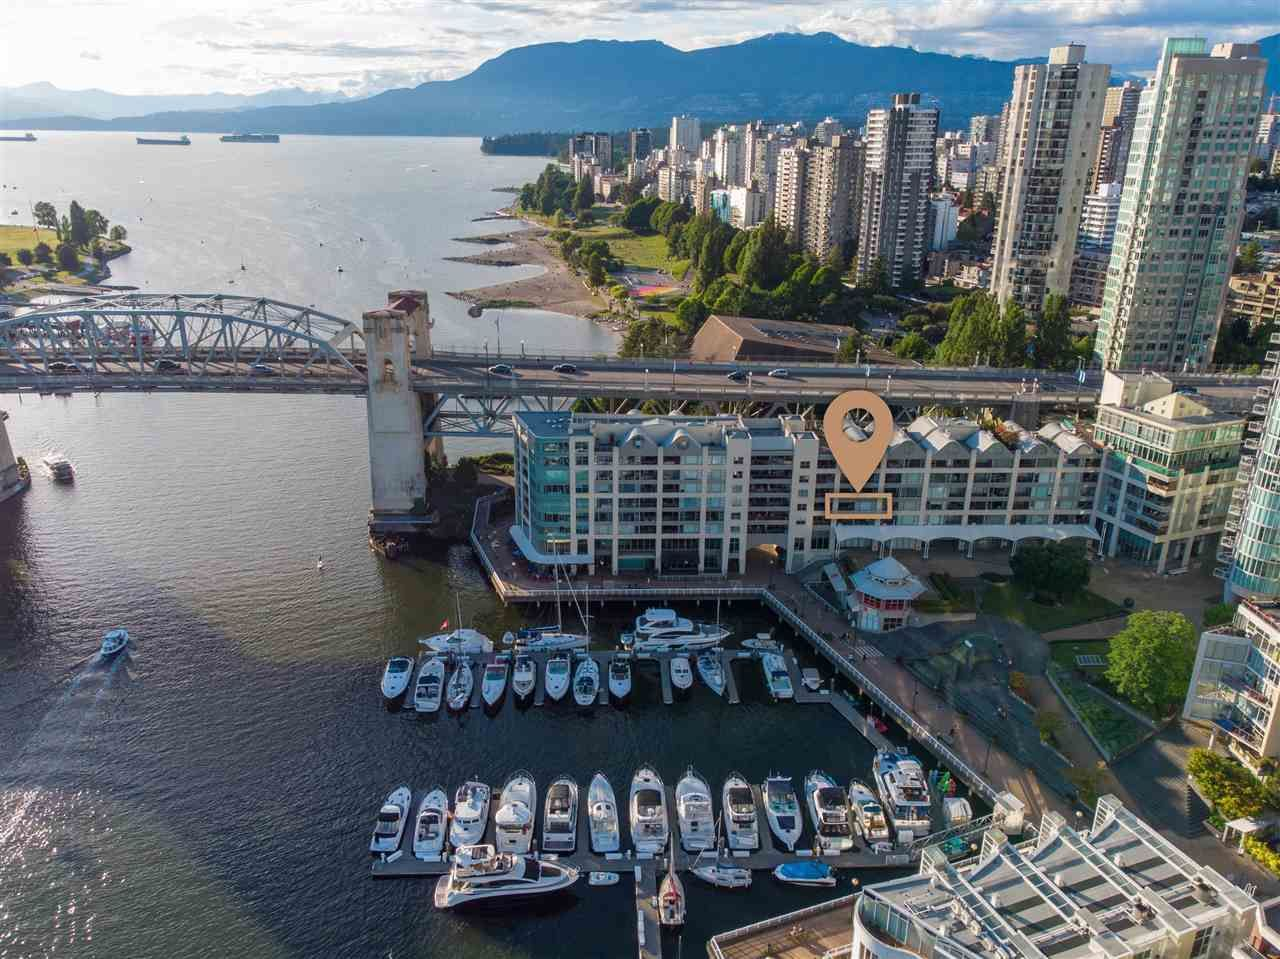 Main Photo: 303 1008 BEACH Avenue in Vancouver: Yaletown Condo for sale (Vancouver West)  : MLS®# R2593017